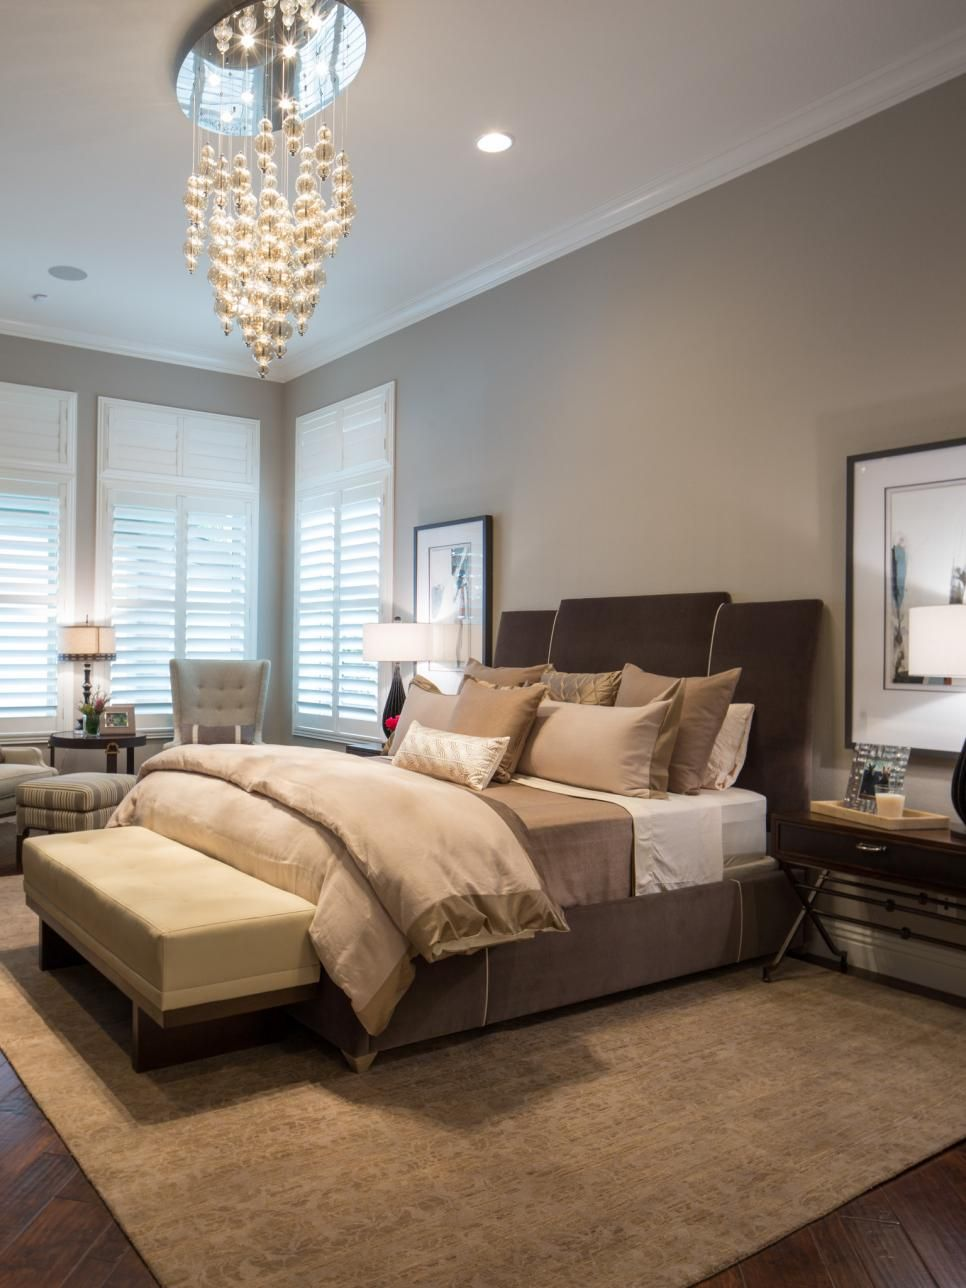 Jonathan scott 39 s bedroom features a mix of browns taupes for Braunes schlafzimmer